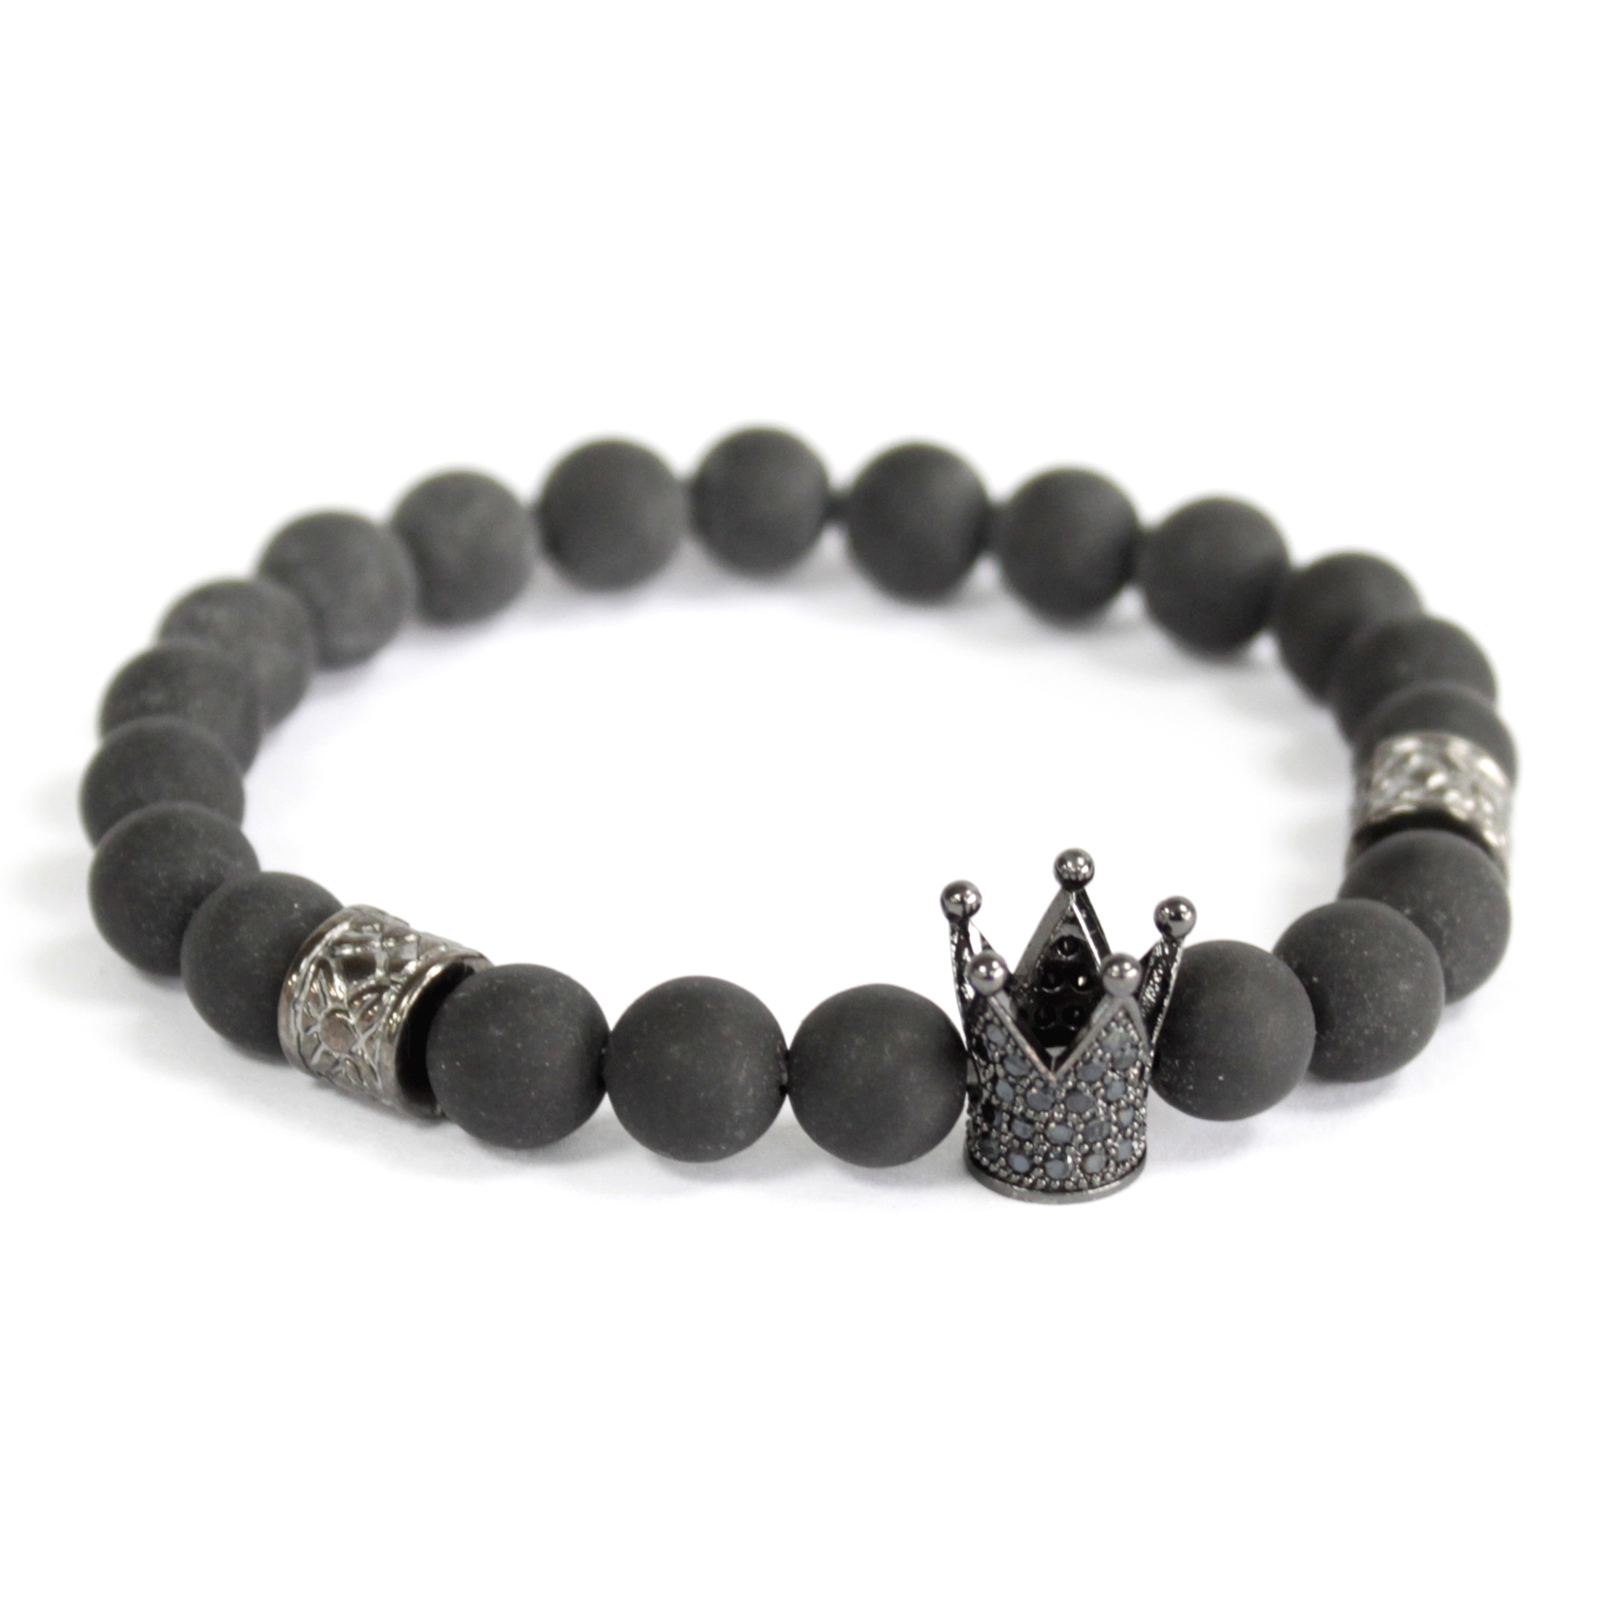 3x Crystal Crown / Black Agate - Gemstone Bracelet